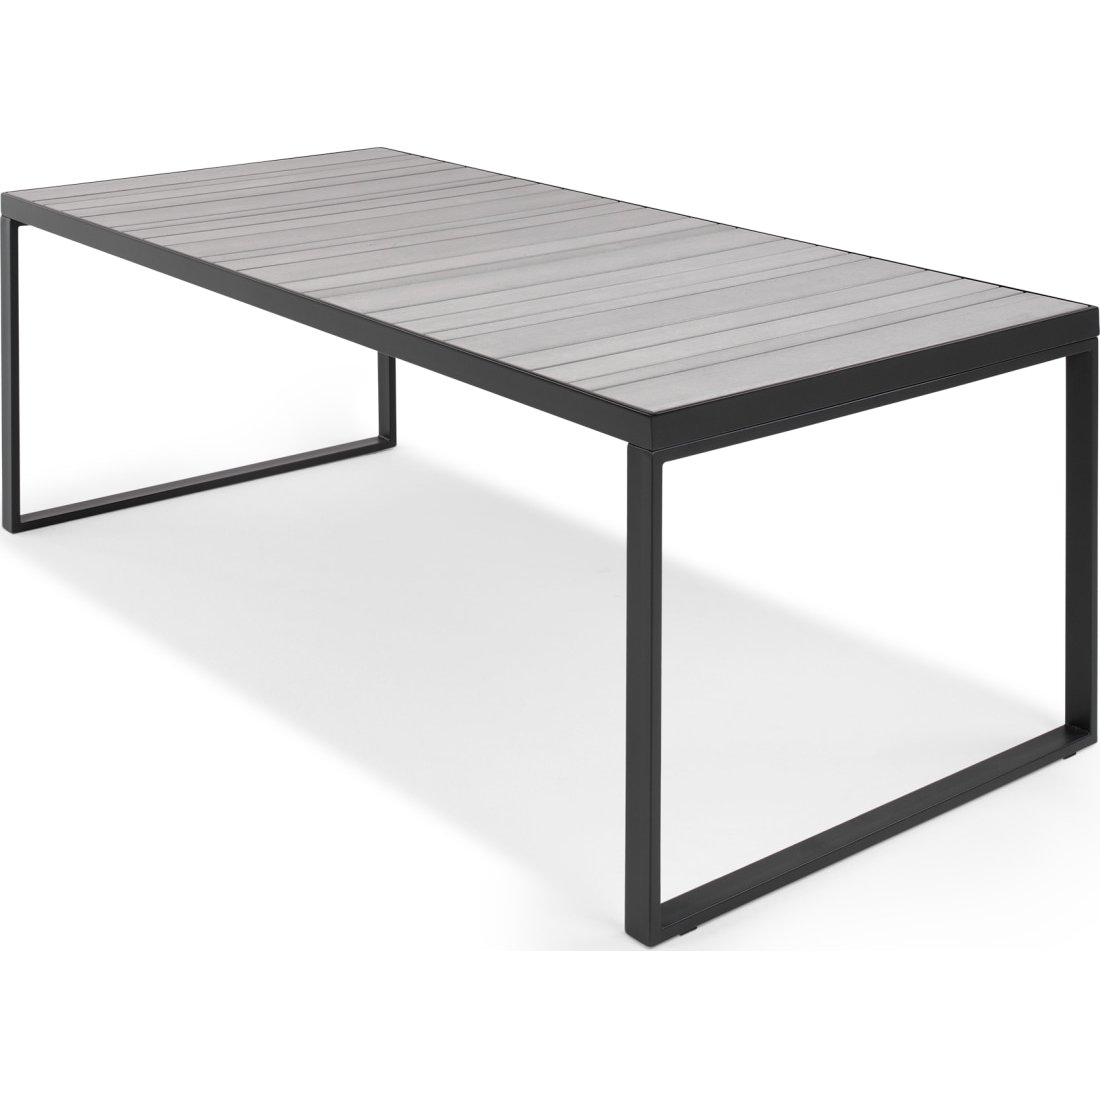 image-Catania Garden 8 Seater Dining Table, Polywood